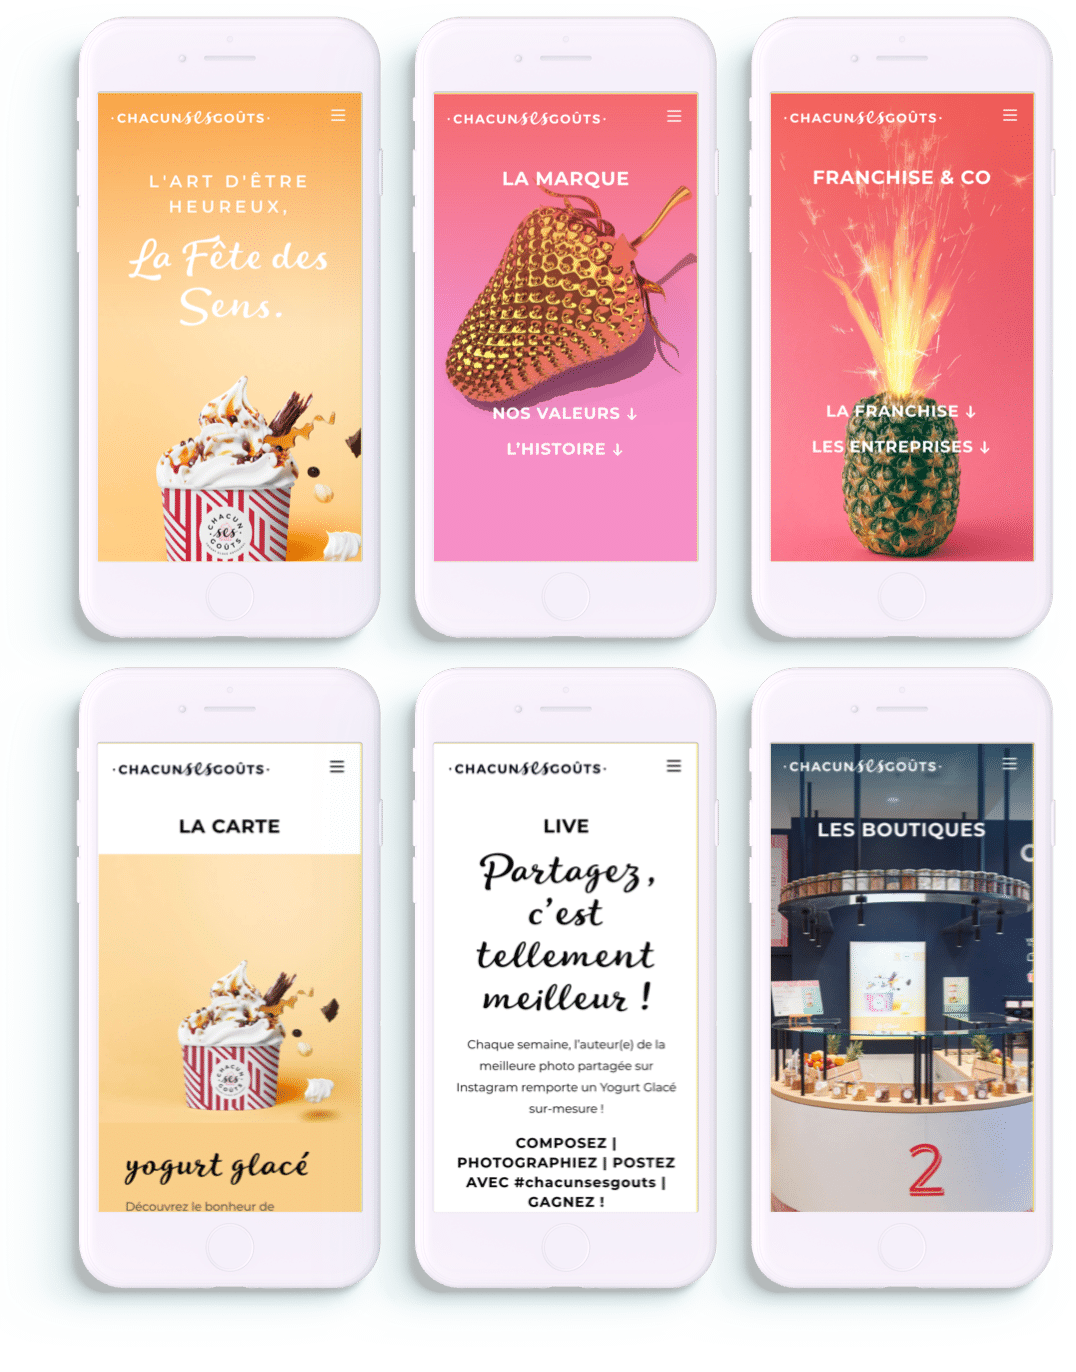 Un design optimisé pour les mobiles : 6 pages sur iphone